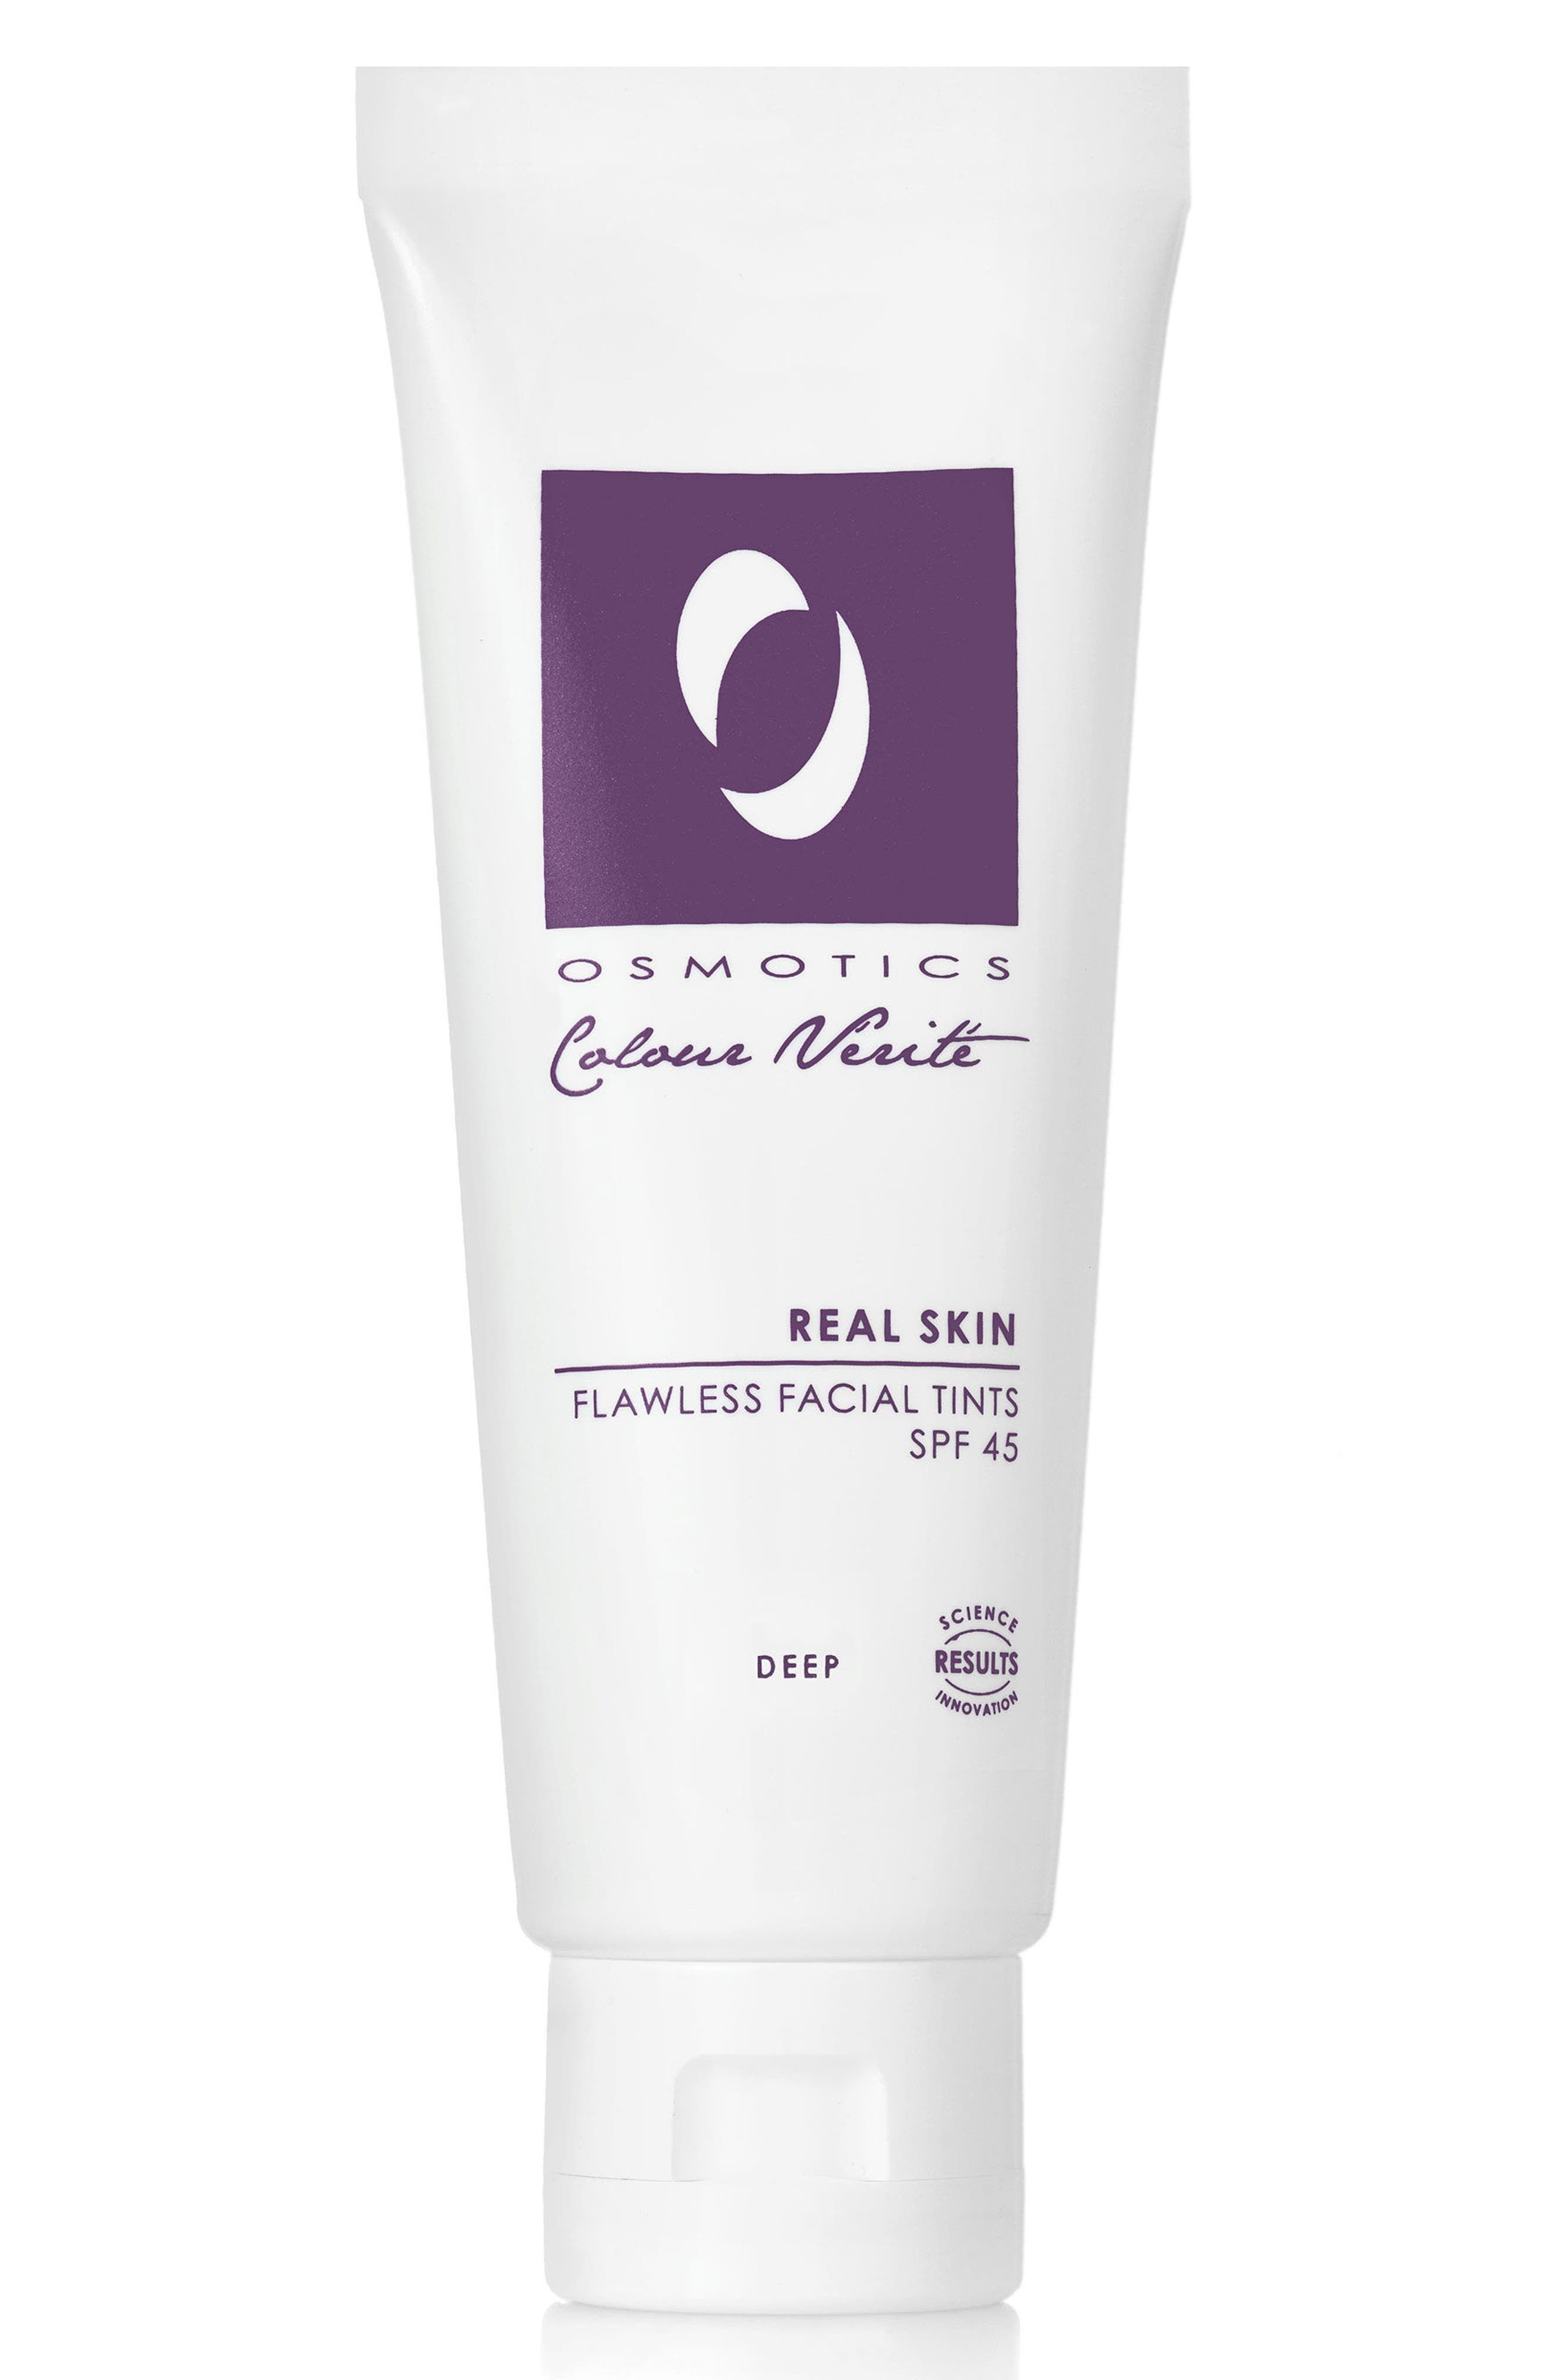 Osmotics Cosmeceuticals Real Skin Flawless Facial Tint SPF 45